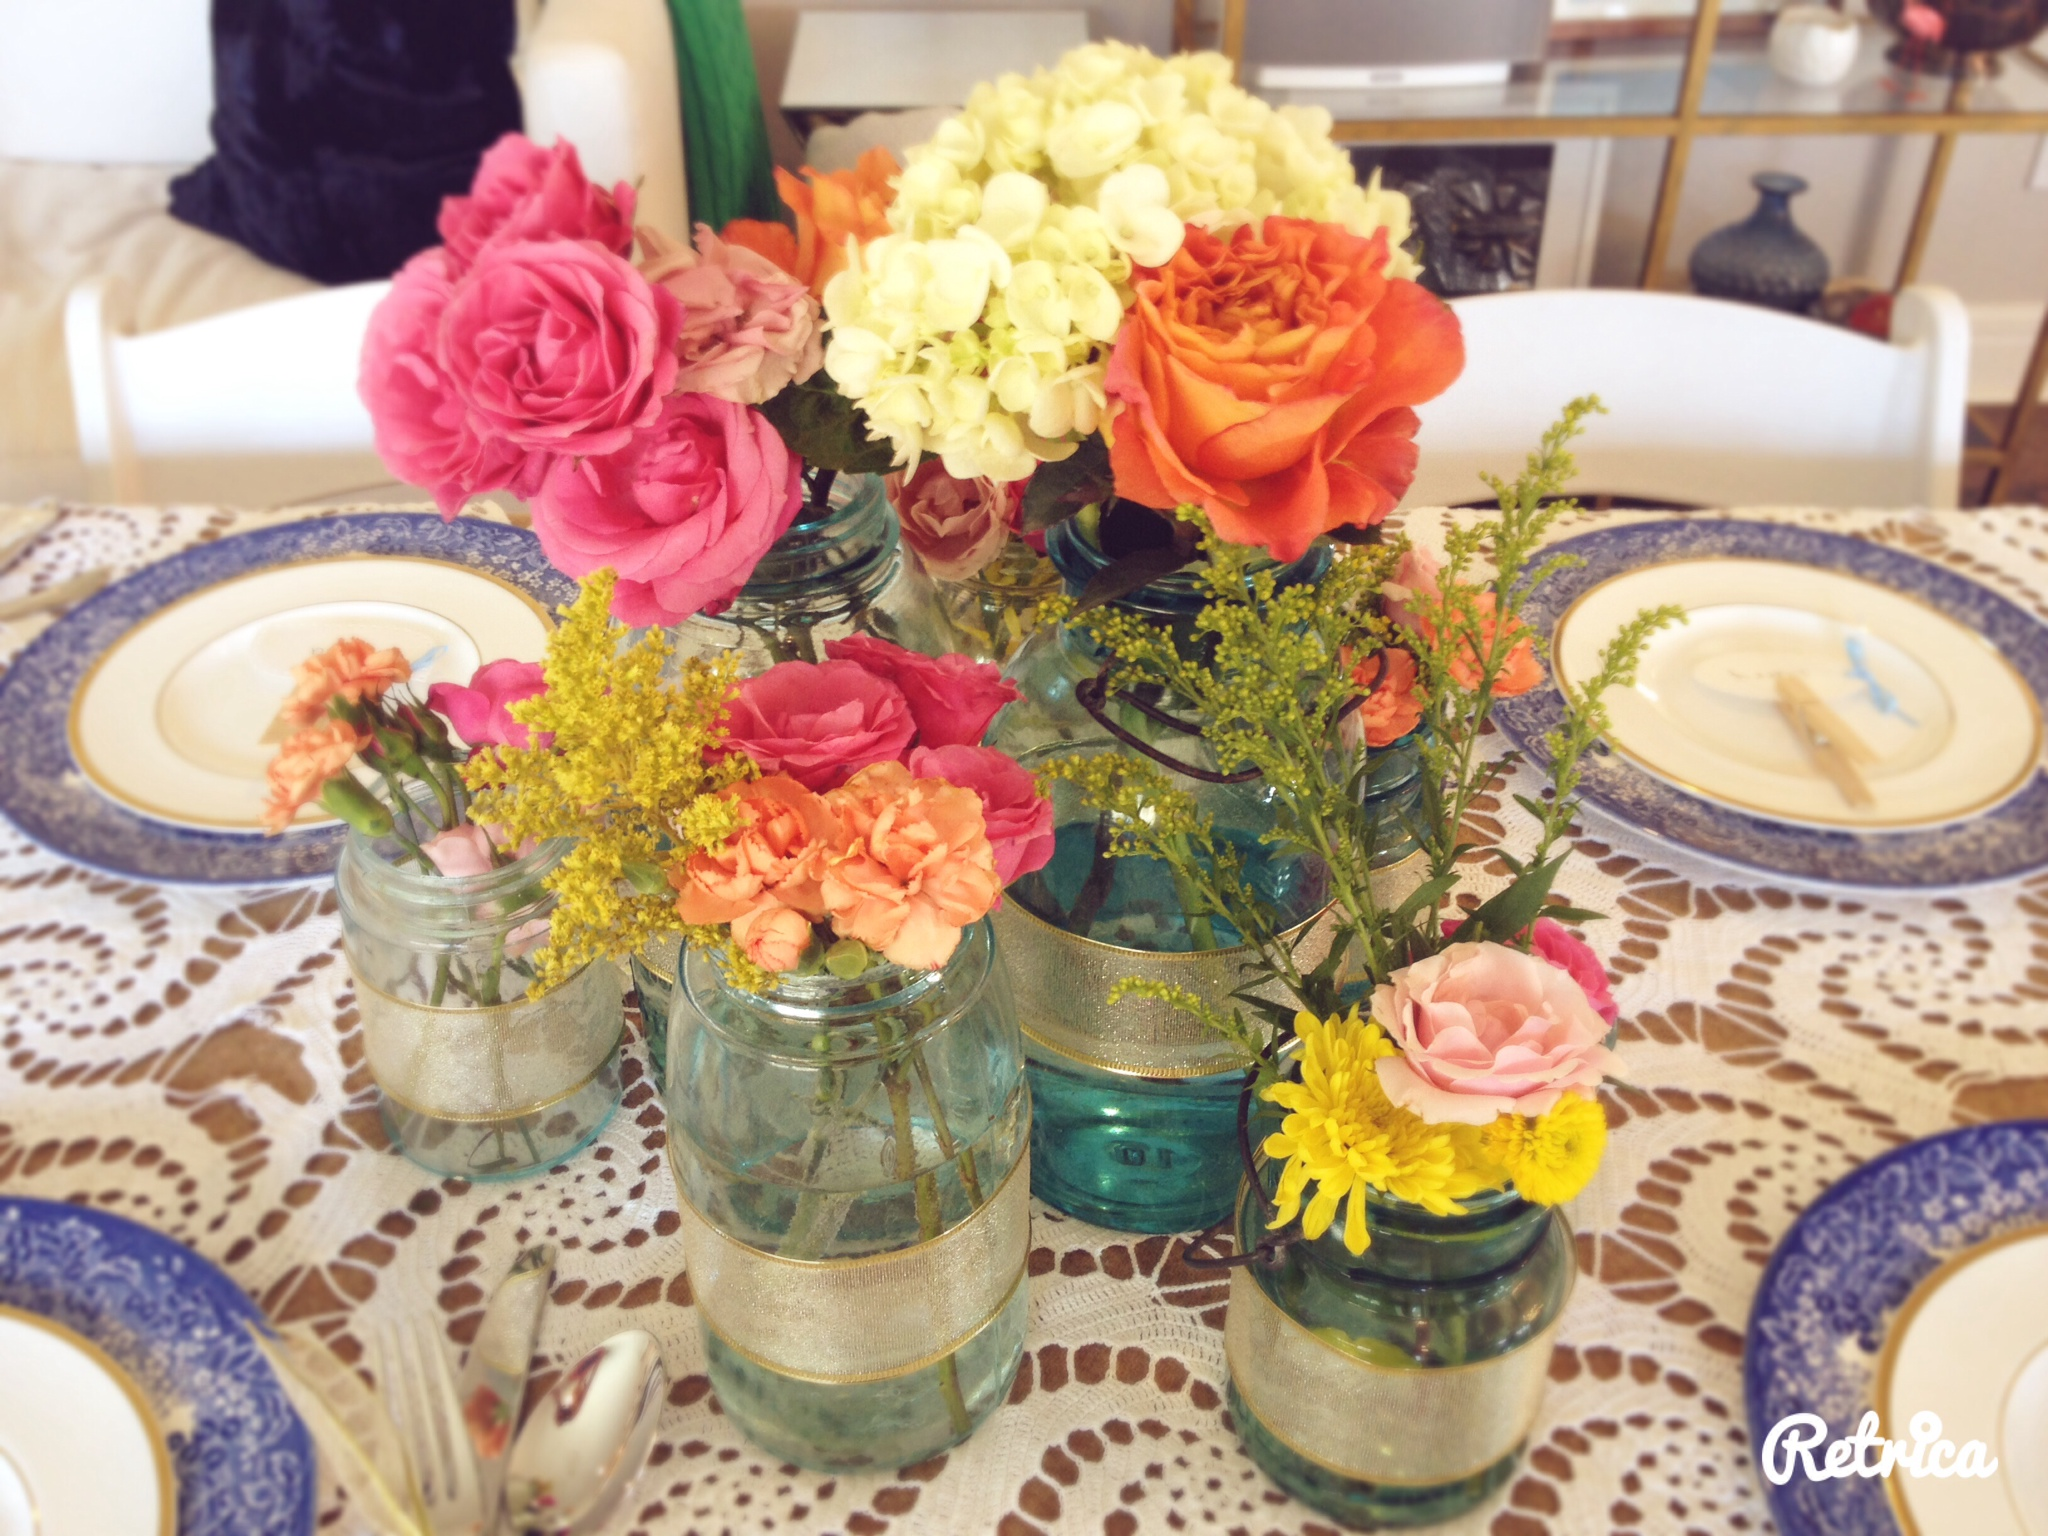 Ellie Noble's table was elegant with fun colors.